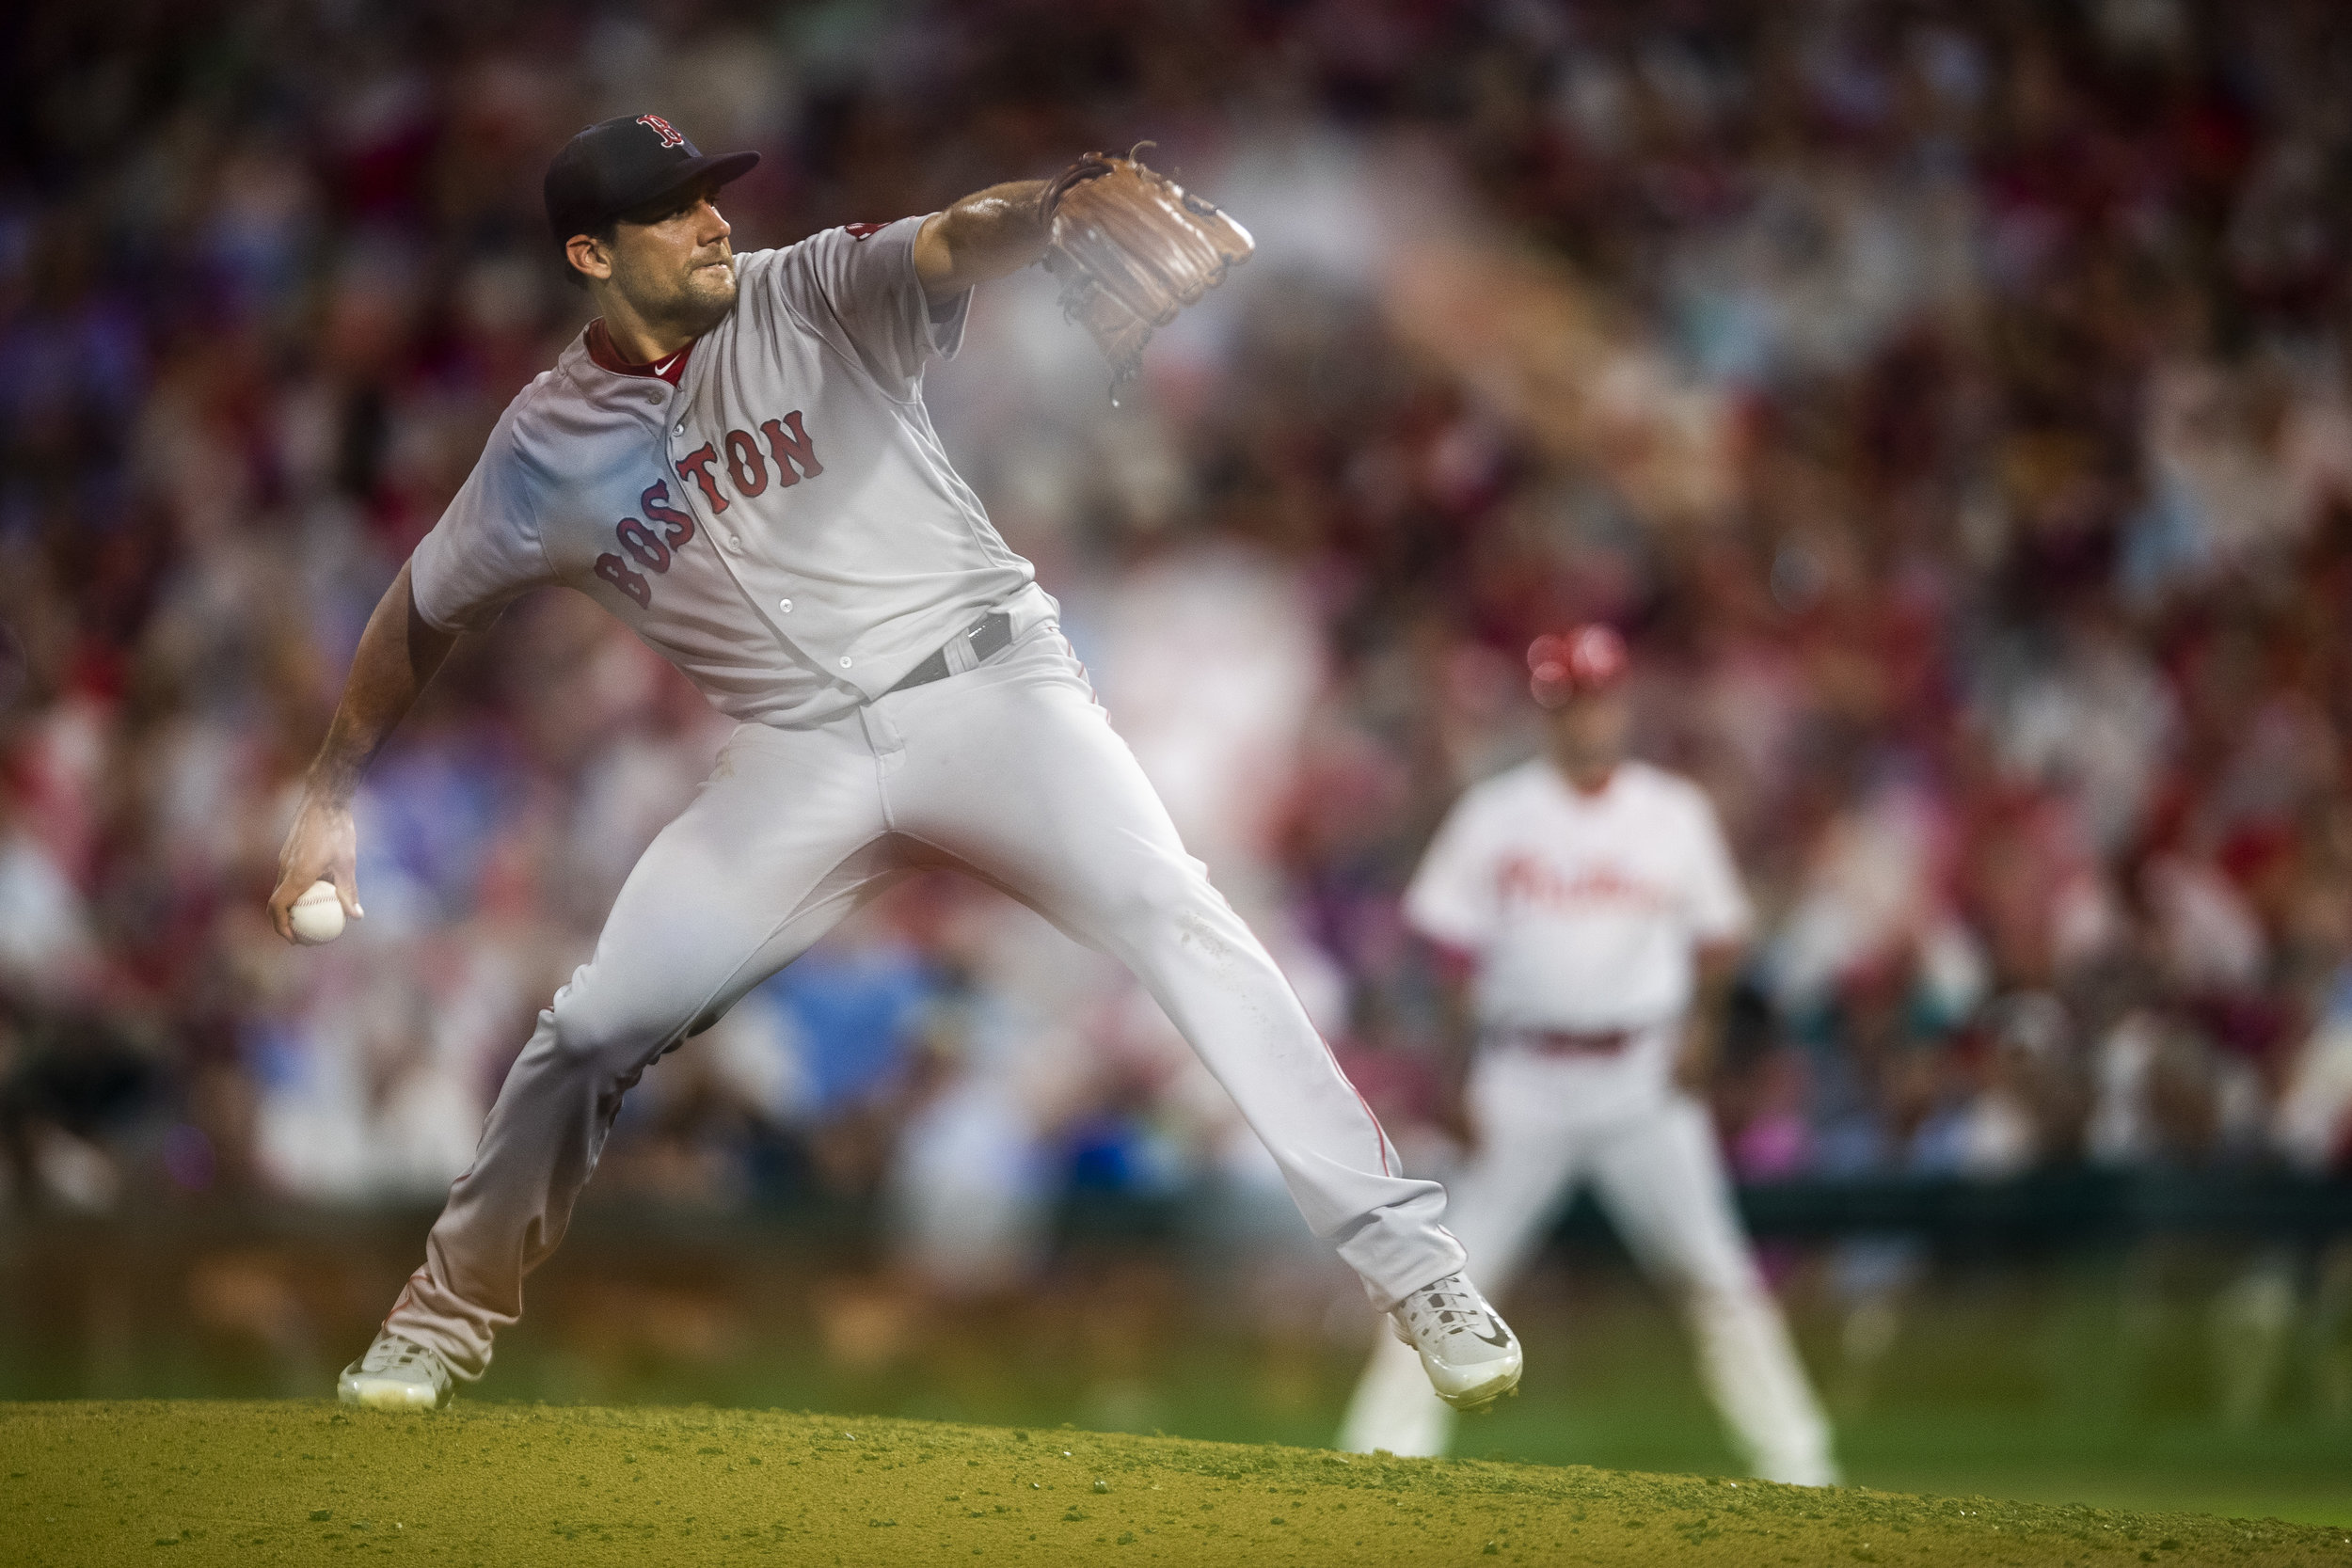 August 15, 2018, Philadelphia, PA: Boston Red Sox pitcher Nathan Eovaldi delivers a pitch as the Boston Red Sox face the Philadelphia Phillies at Citizen Bank Park in Philadelphia, Pennsylvania on Wednesday, August 15, 2018. (Photo by Matthew Thomas/Boston Red Sox)